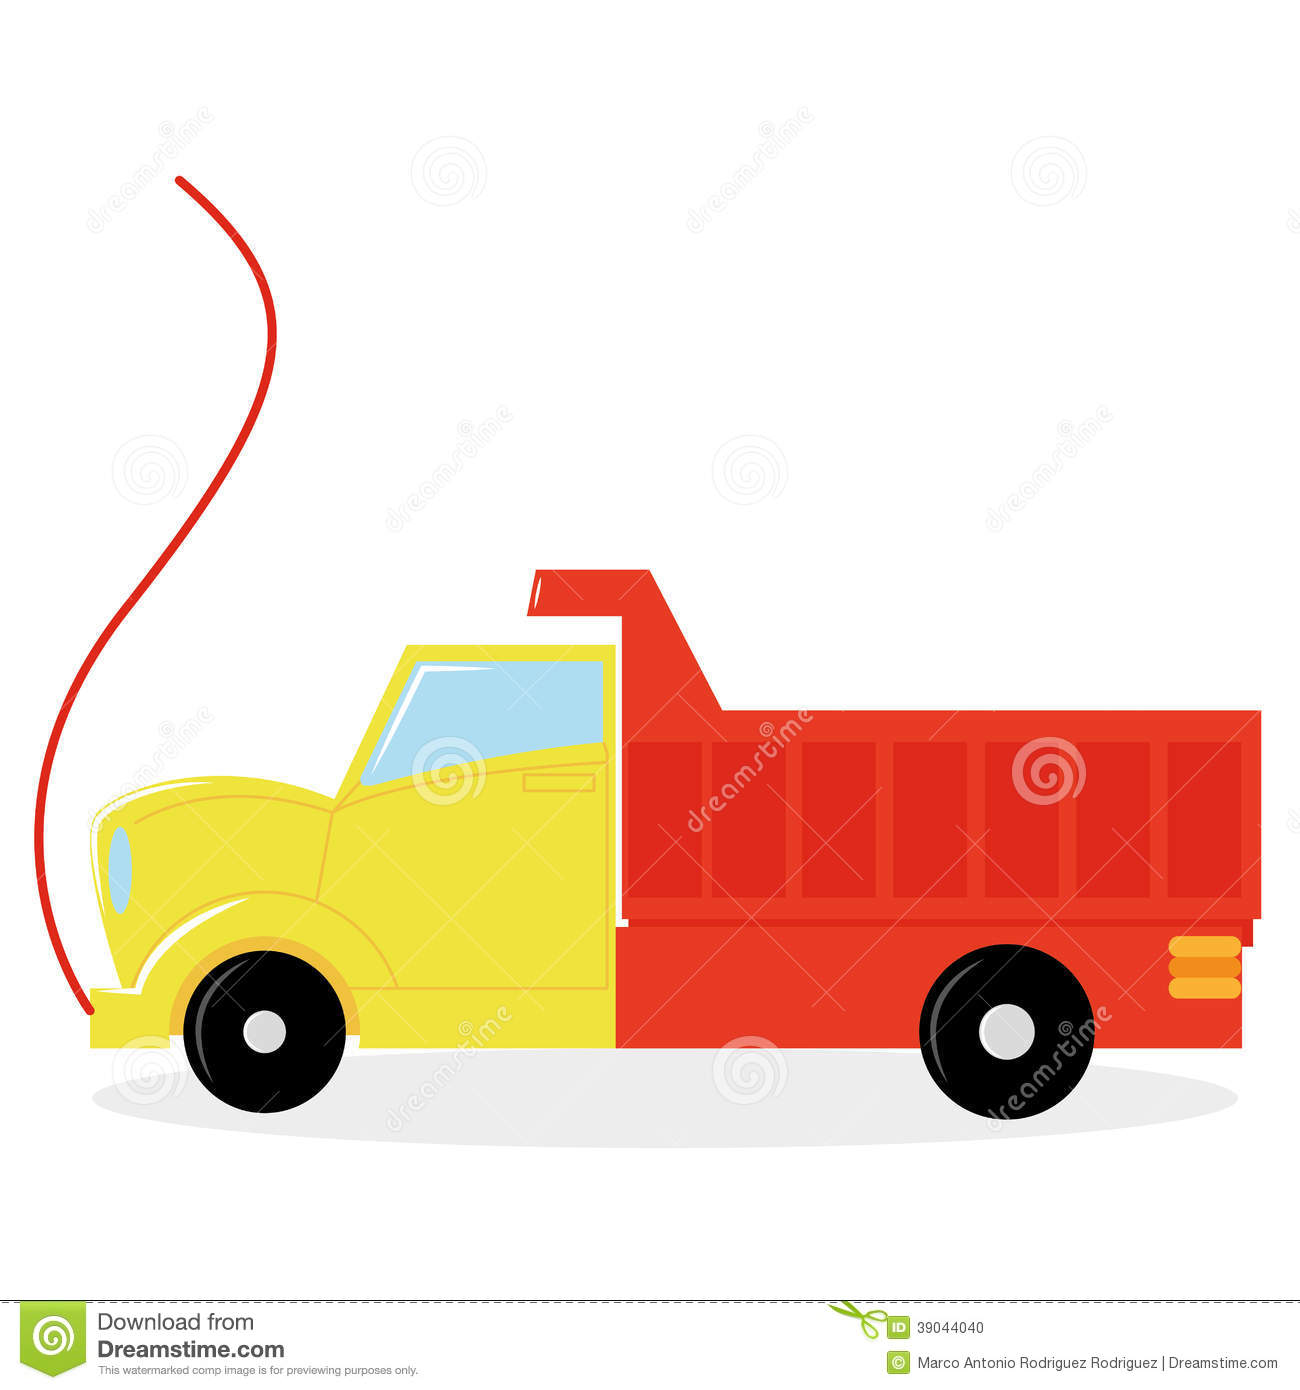 Cartoon Truck Toy Isolated On White Background Stock Vector Image 39044040